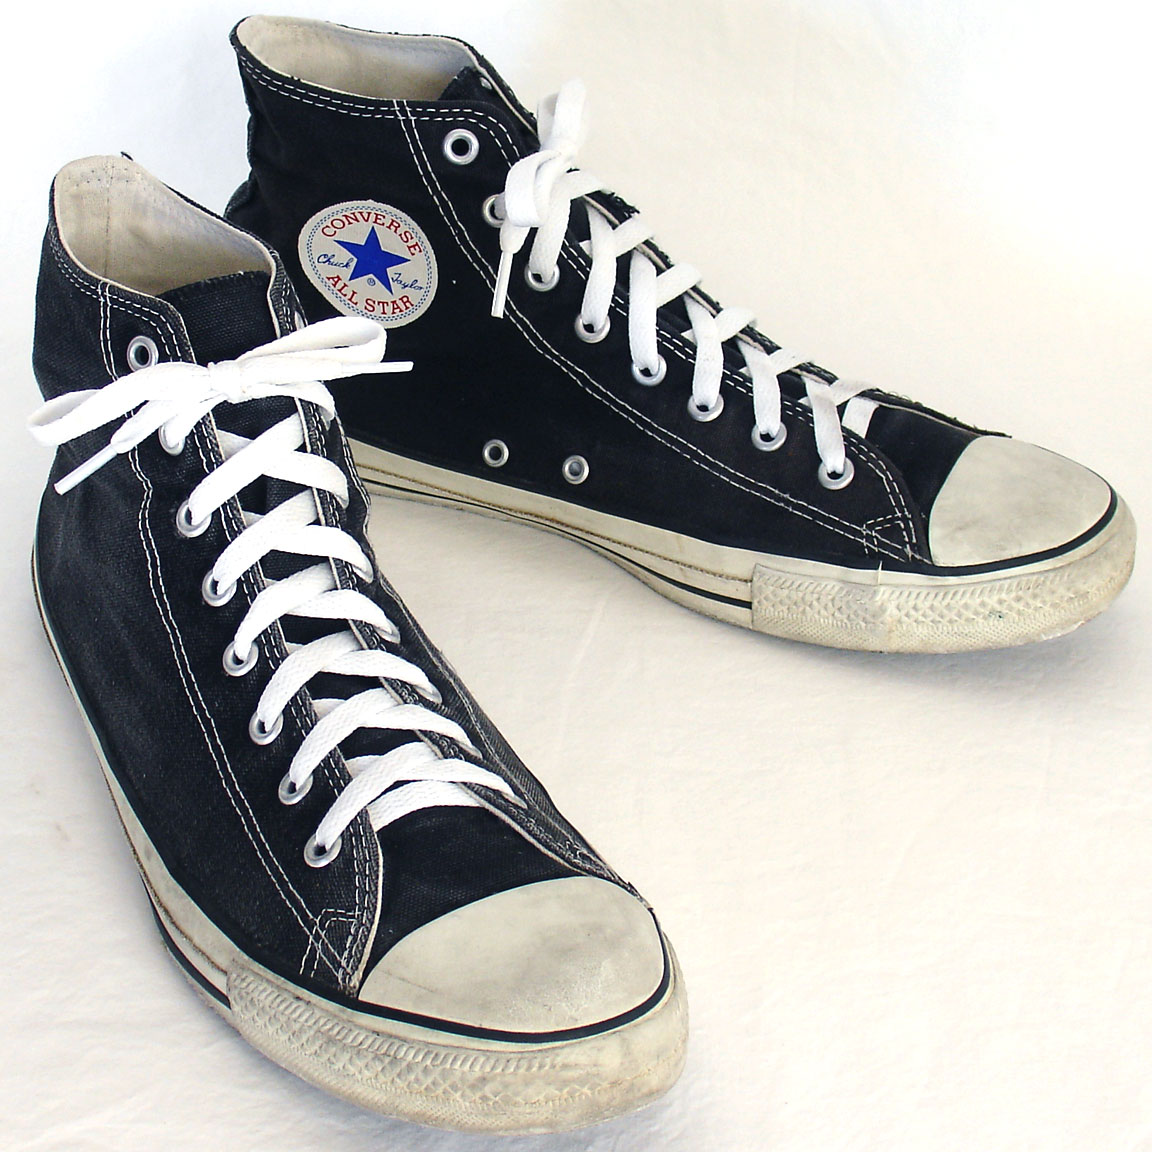 22bdd9e8a637 Vintage American-made Converse All Star Chuck Taylor black hi-top shoes for  sale